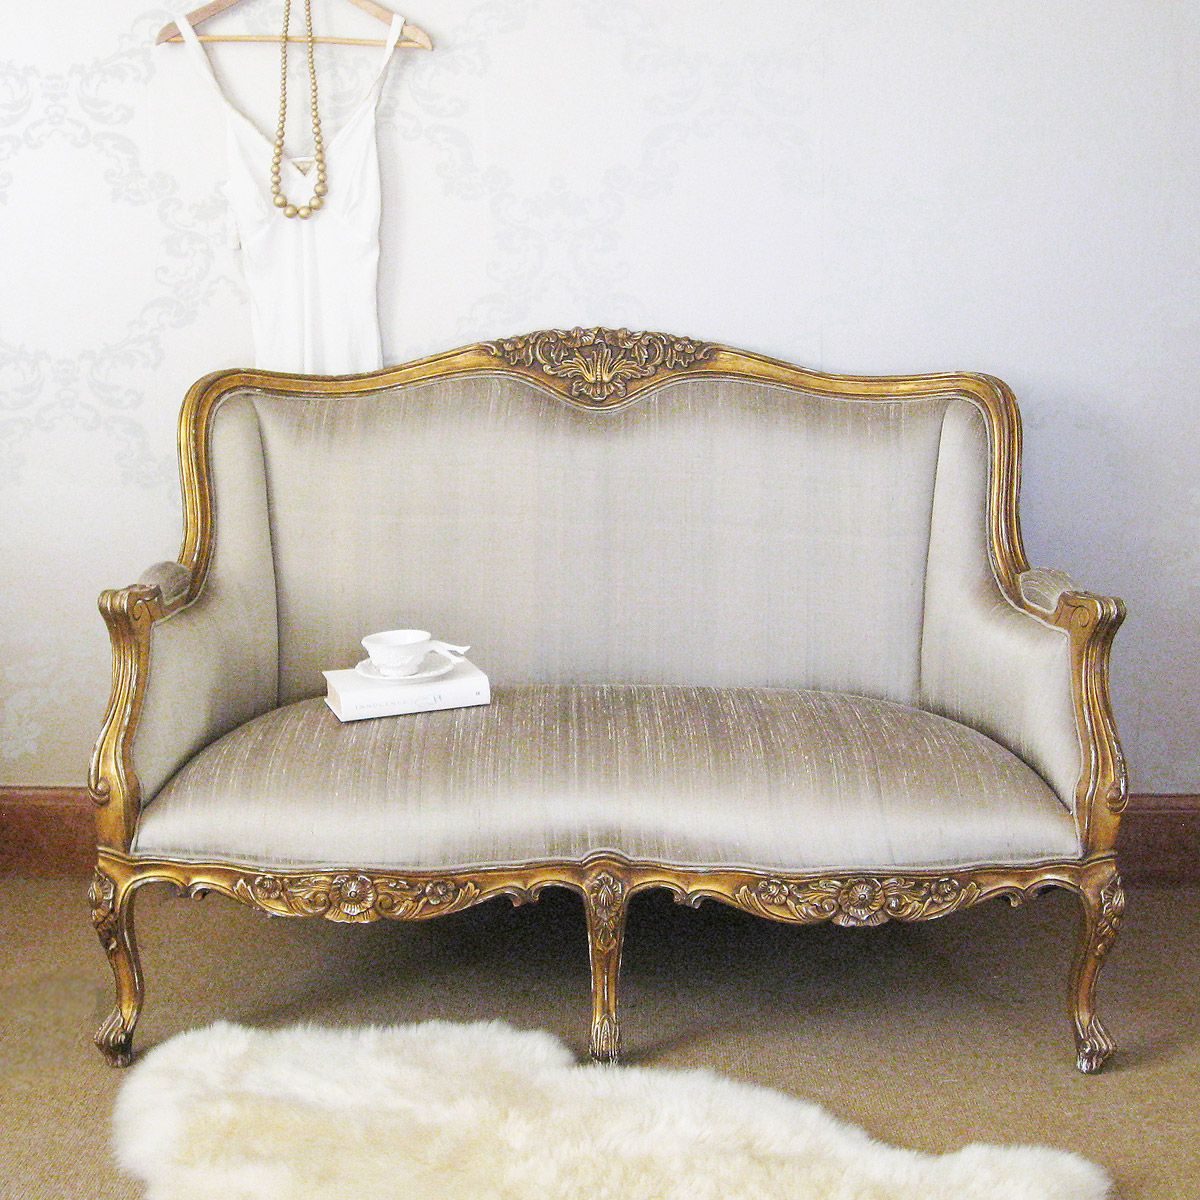 Versailles gold bedroom sofa bedroom sofa versailles for Bedroom loveseat